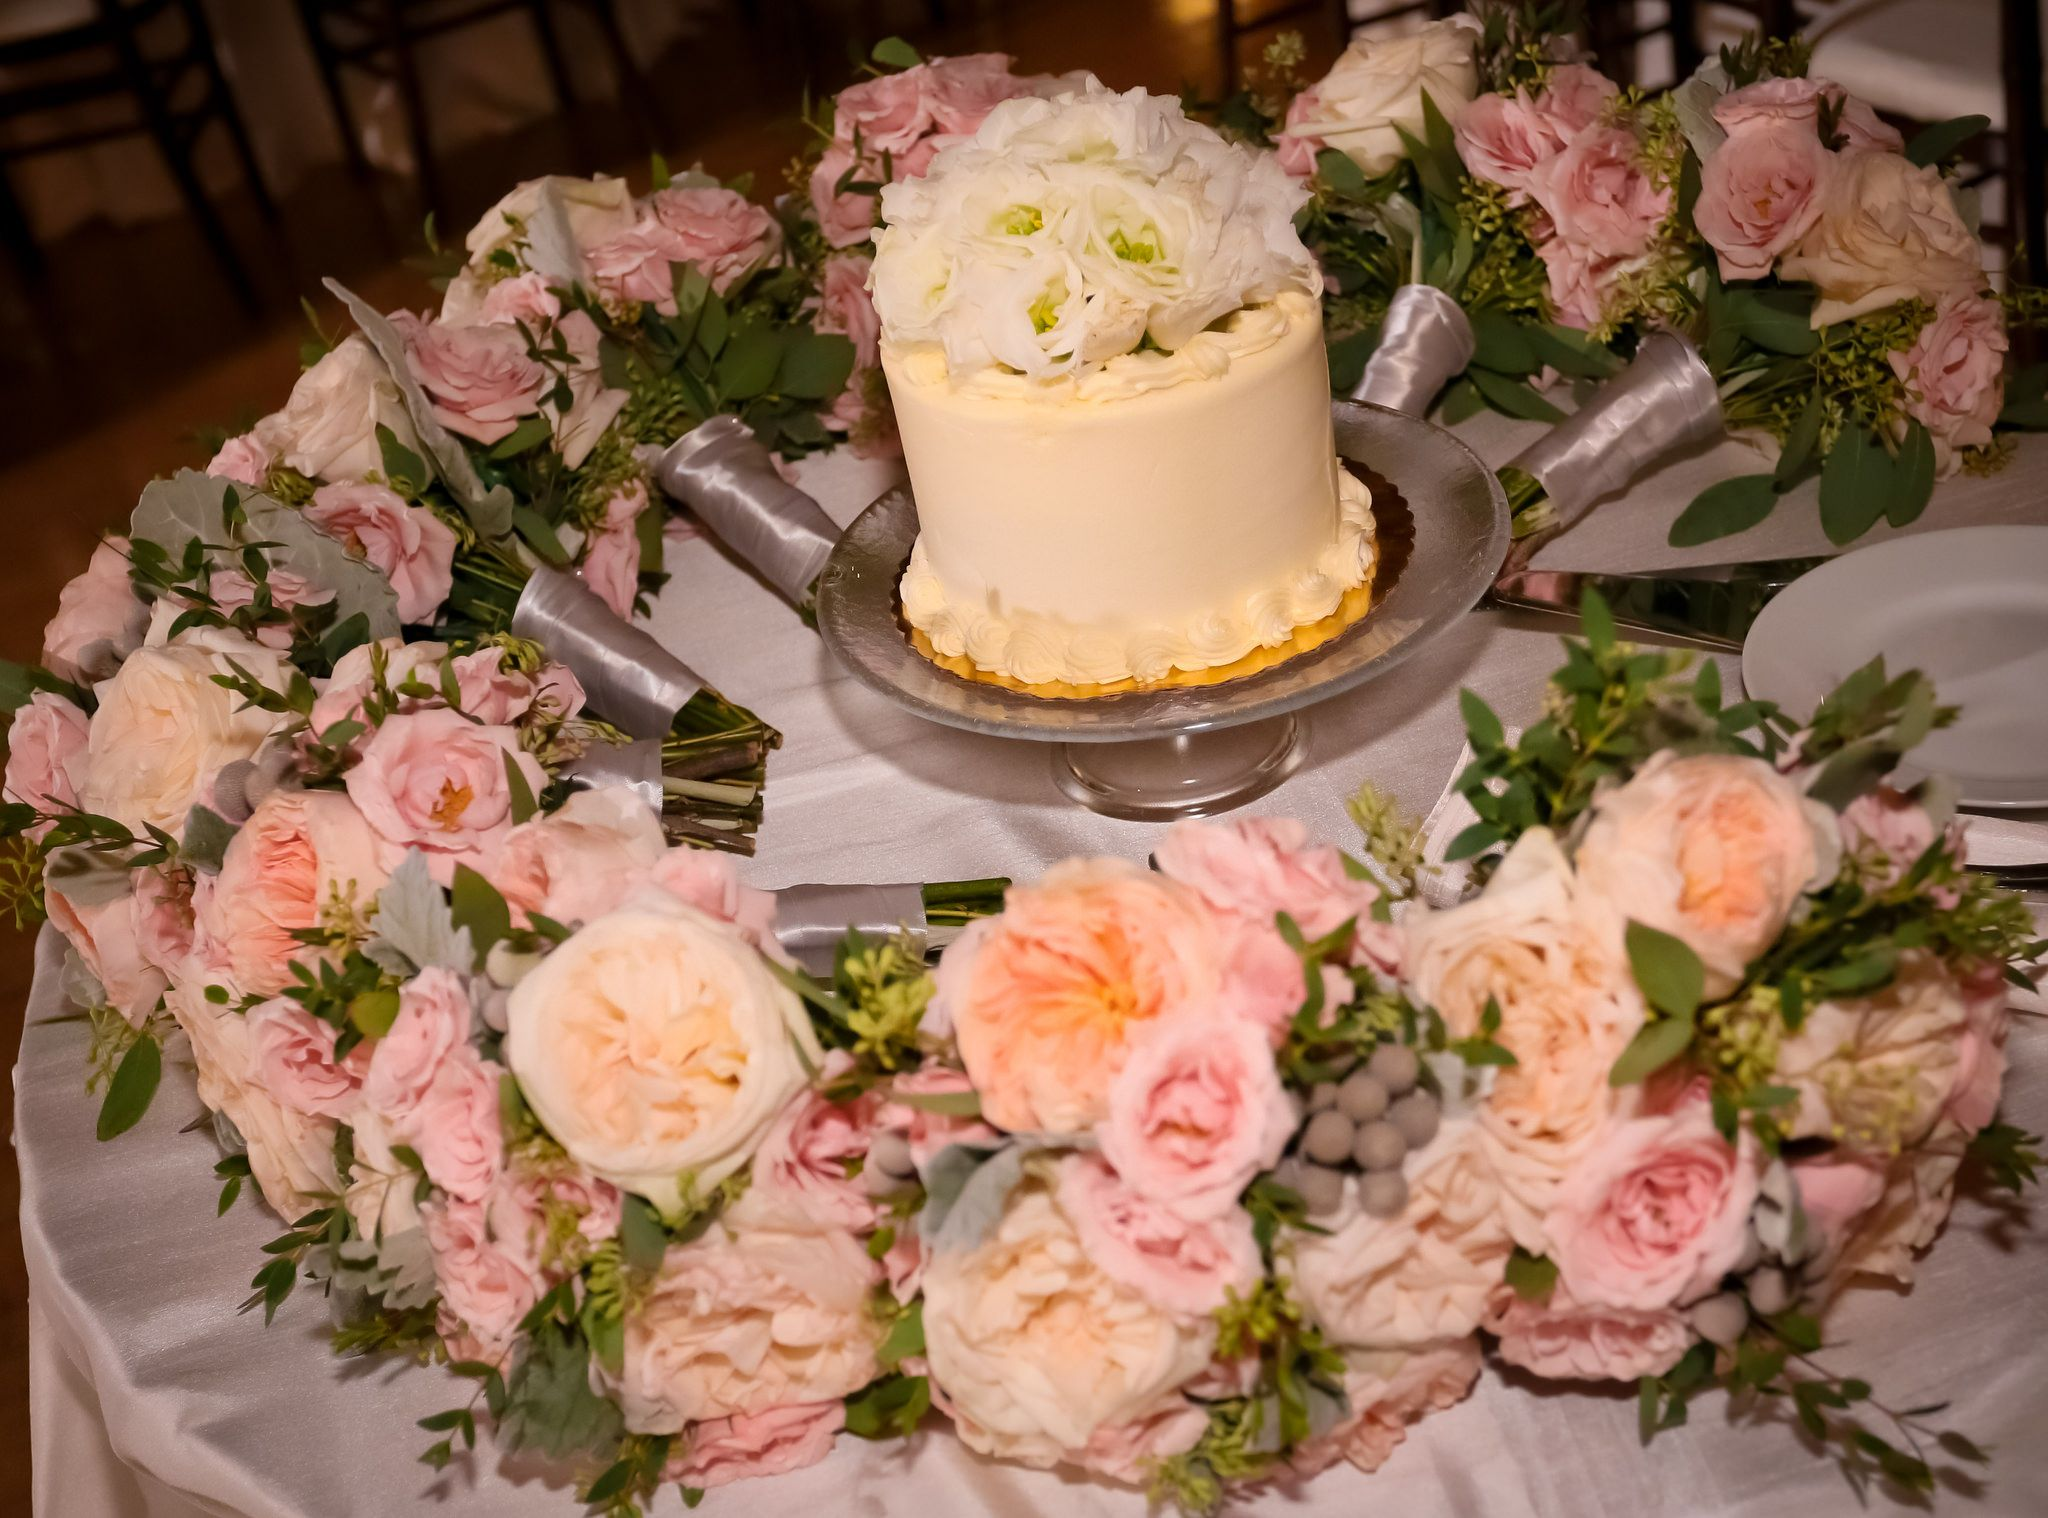 Simple wedding decoration designs  Cake and bouquets nothing better blisschicago weddings amazing